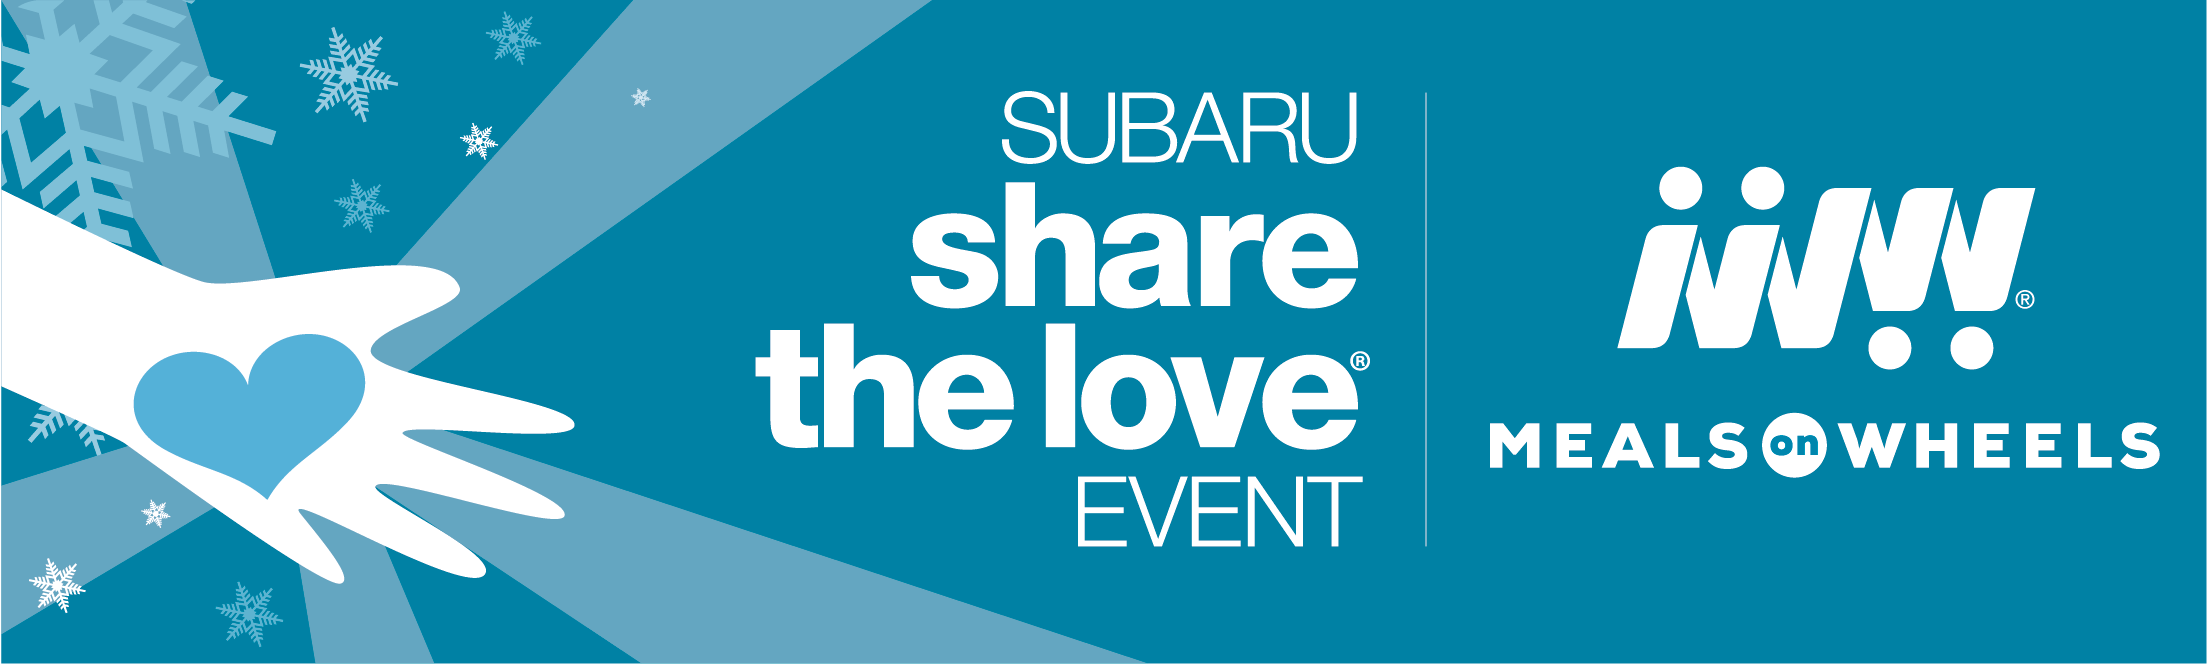 The 2020 Subaru Share The Love Event